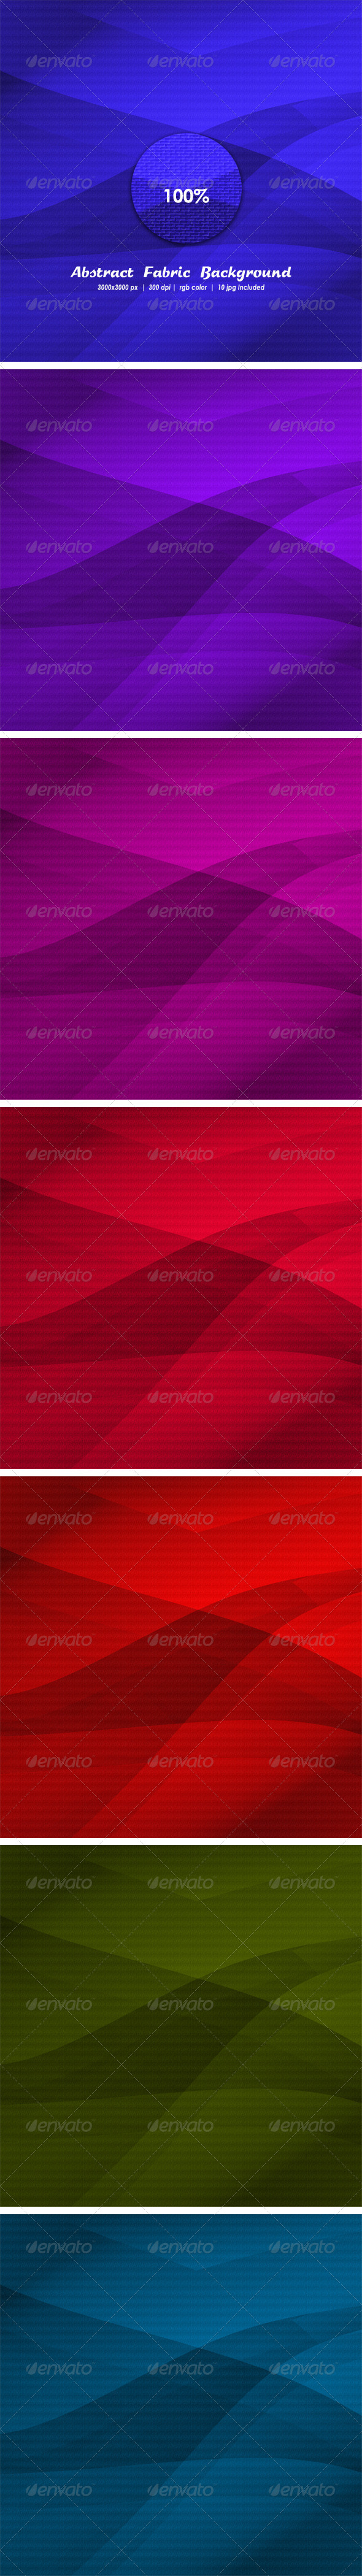 Abstract Fabric Background Set - Abstract Backgrounds